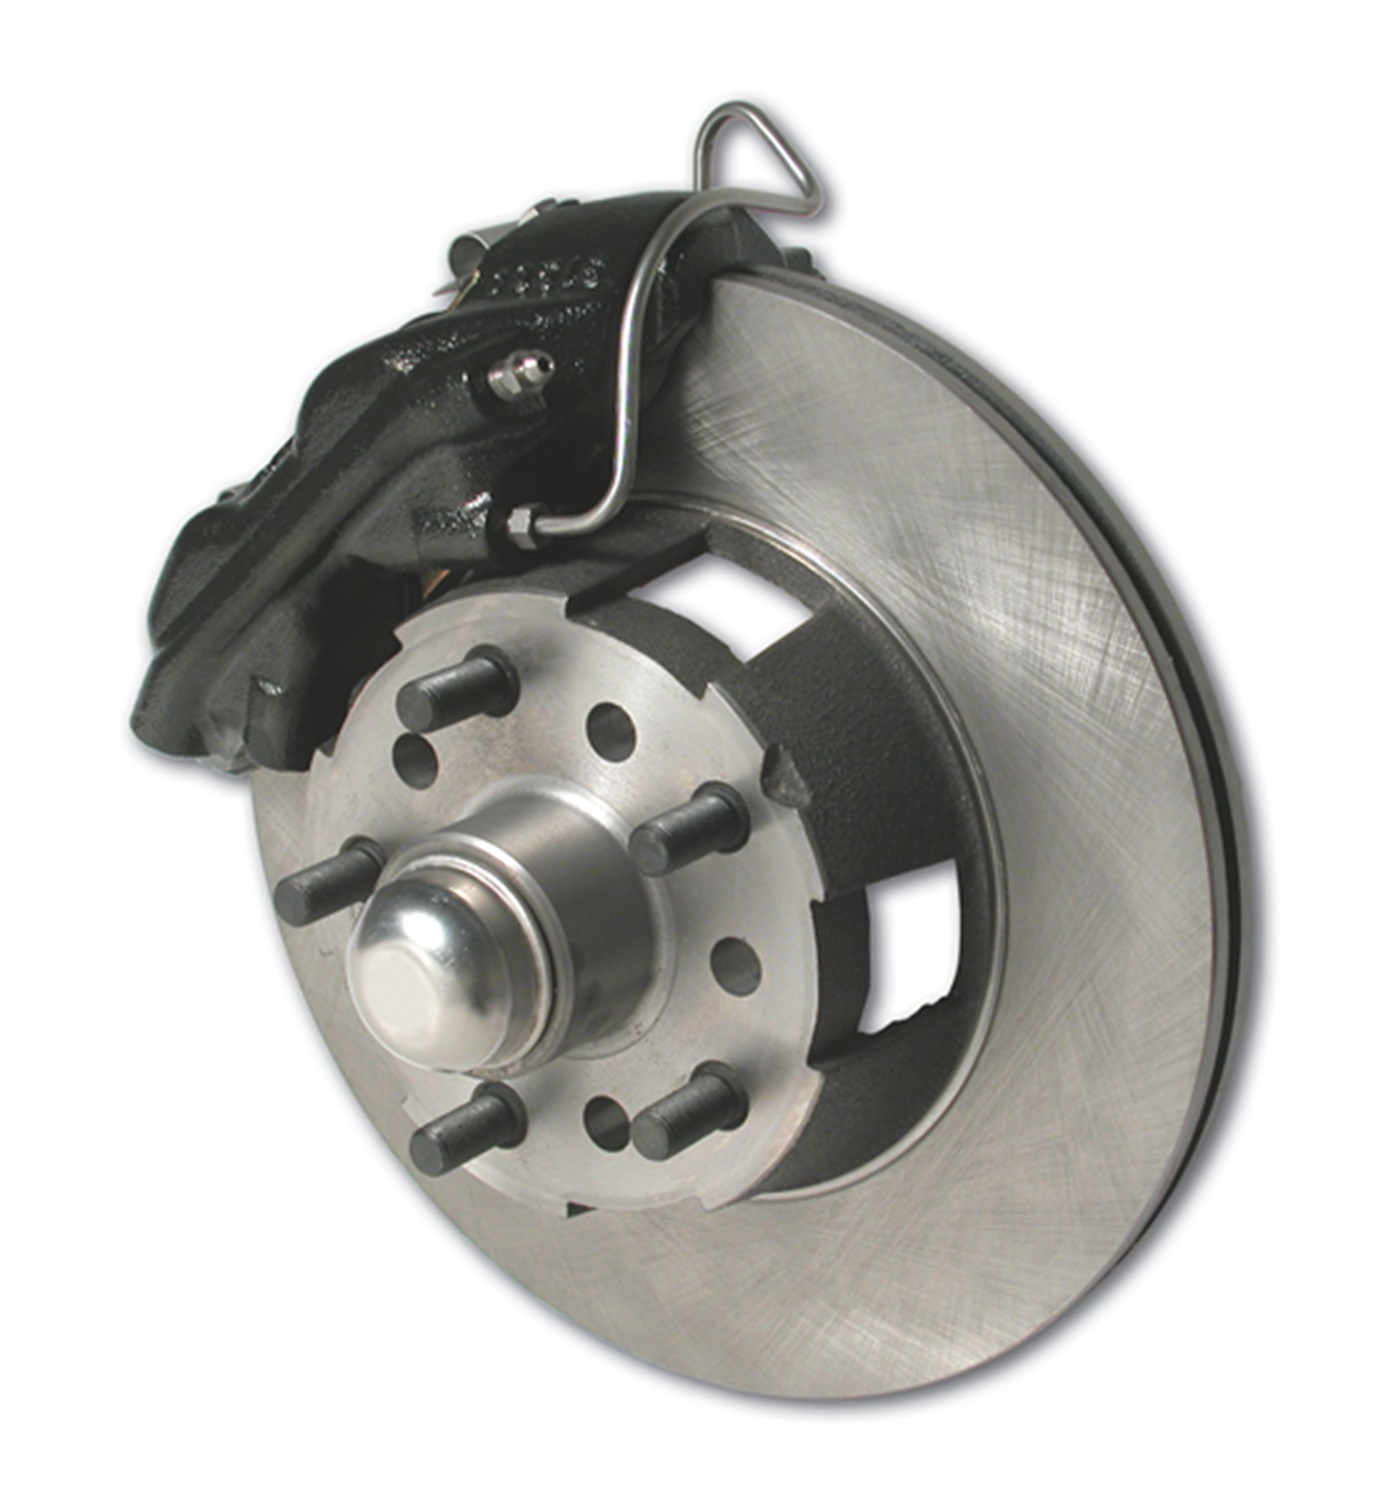 Ssbc Performance Brakes A153 1 Drum To Disc Brake Conversion Kit System Related Parts Calipers Stainless Steel Sleeved